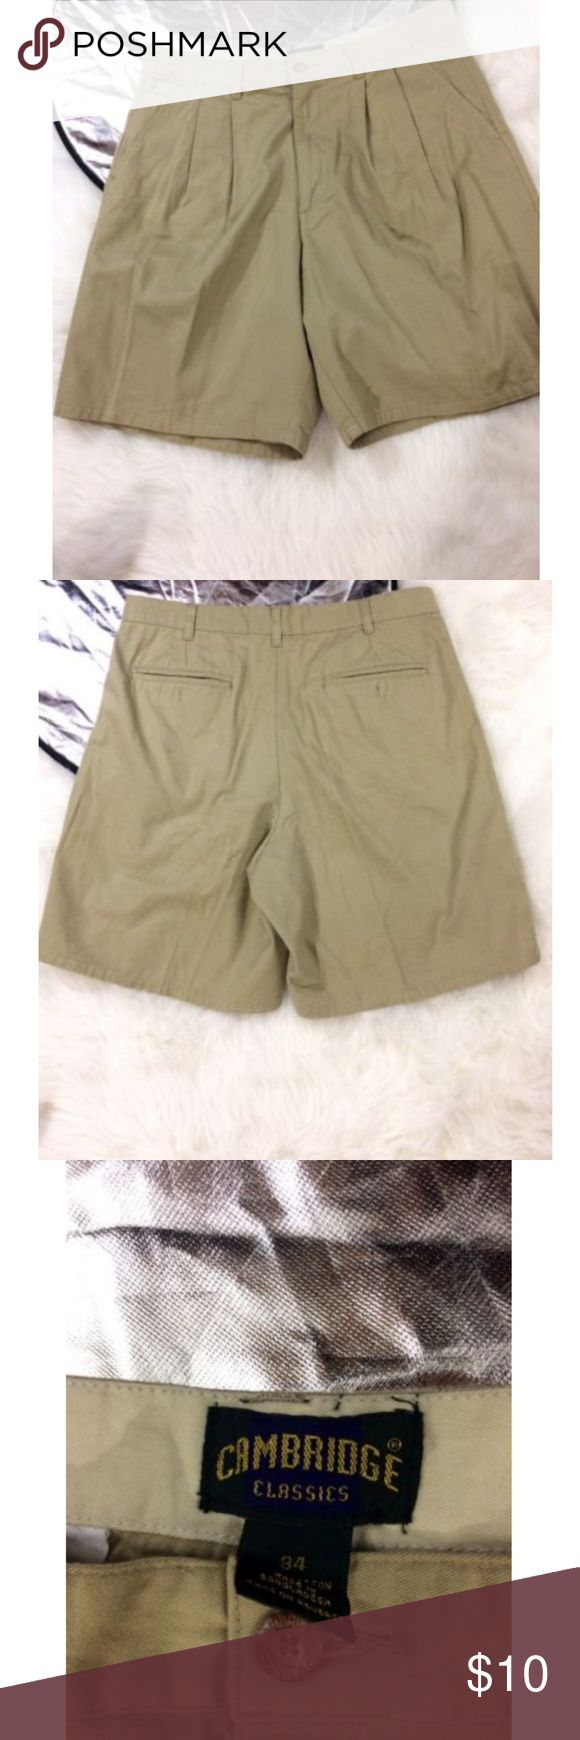 Cambridge mens Khaki Shorts 4 pockets Adult Siz 34 Cambridge mens Khaki Shorts 4 pockets Pre-Owned   Adult Size 34  Please see pictures for full details  Ships fast and safe comes with tracking number cambrige Shorts